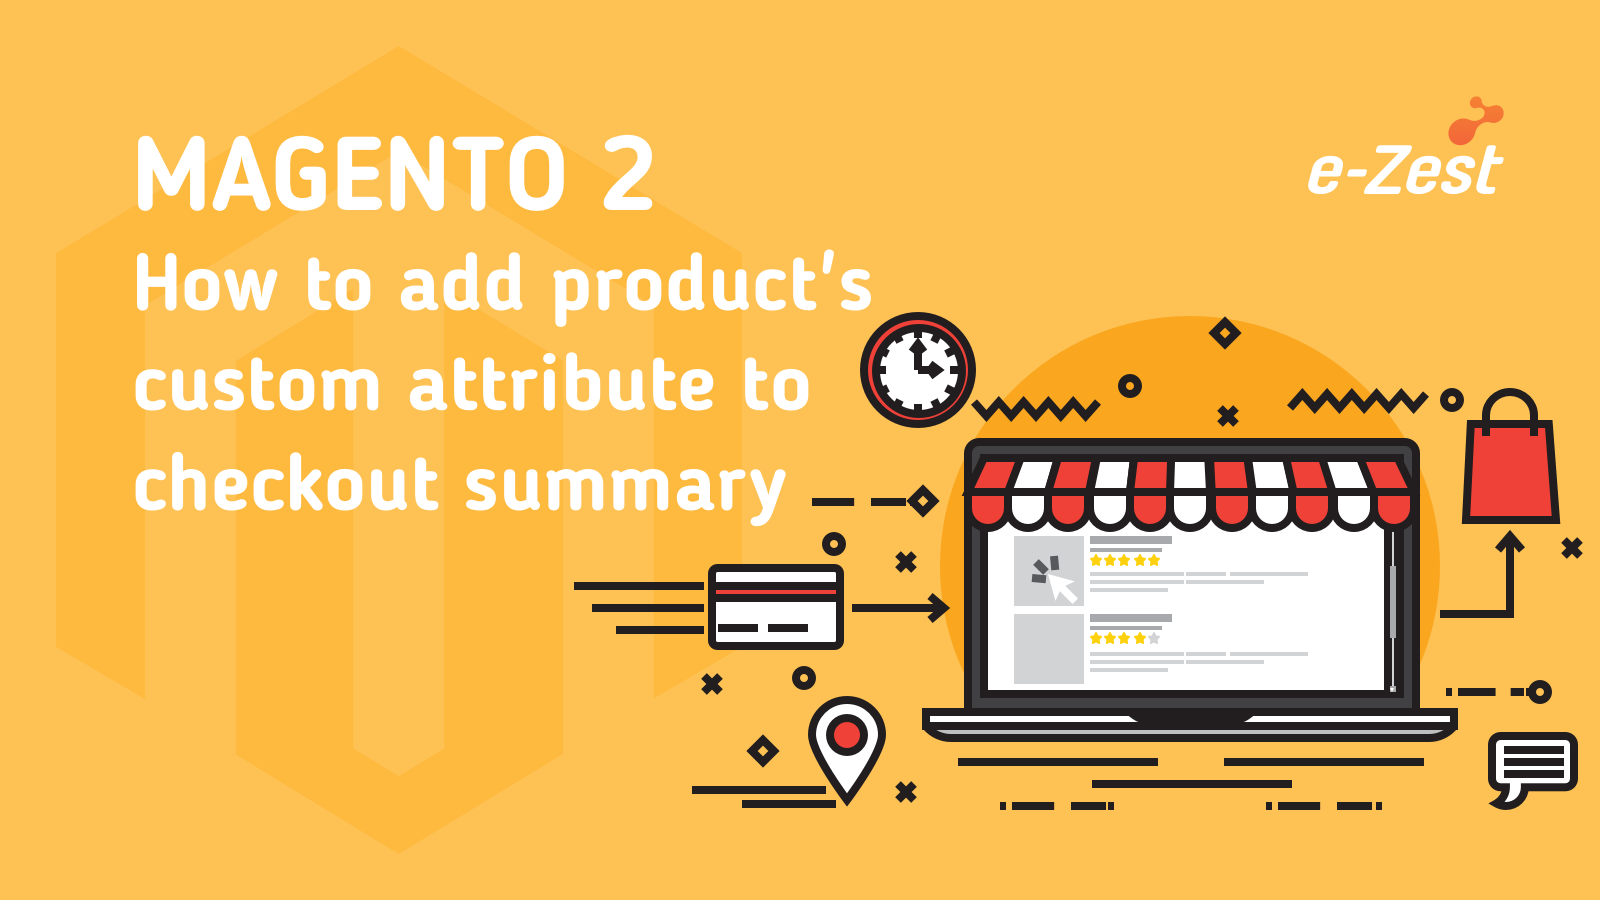 Magento 2 - How to add product's custom attribute to checkout summary